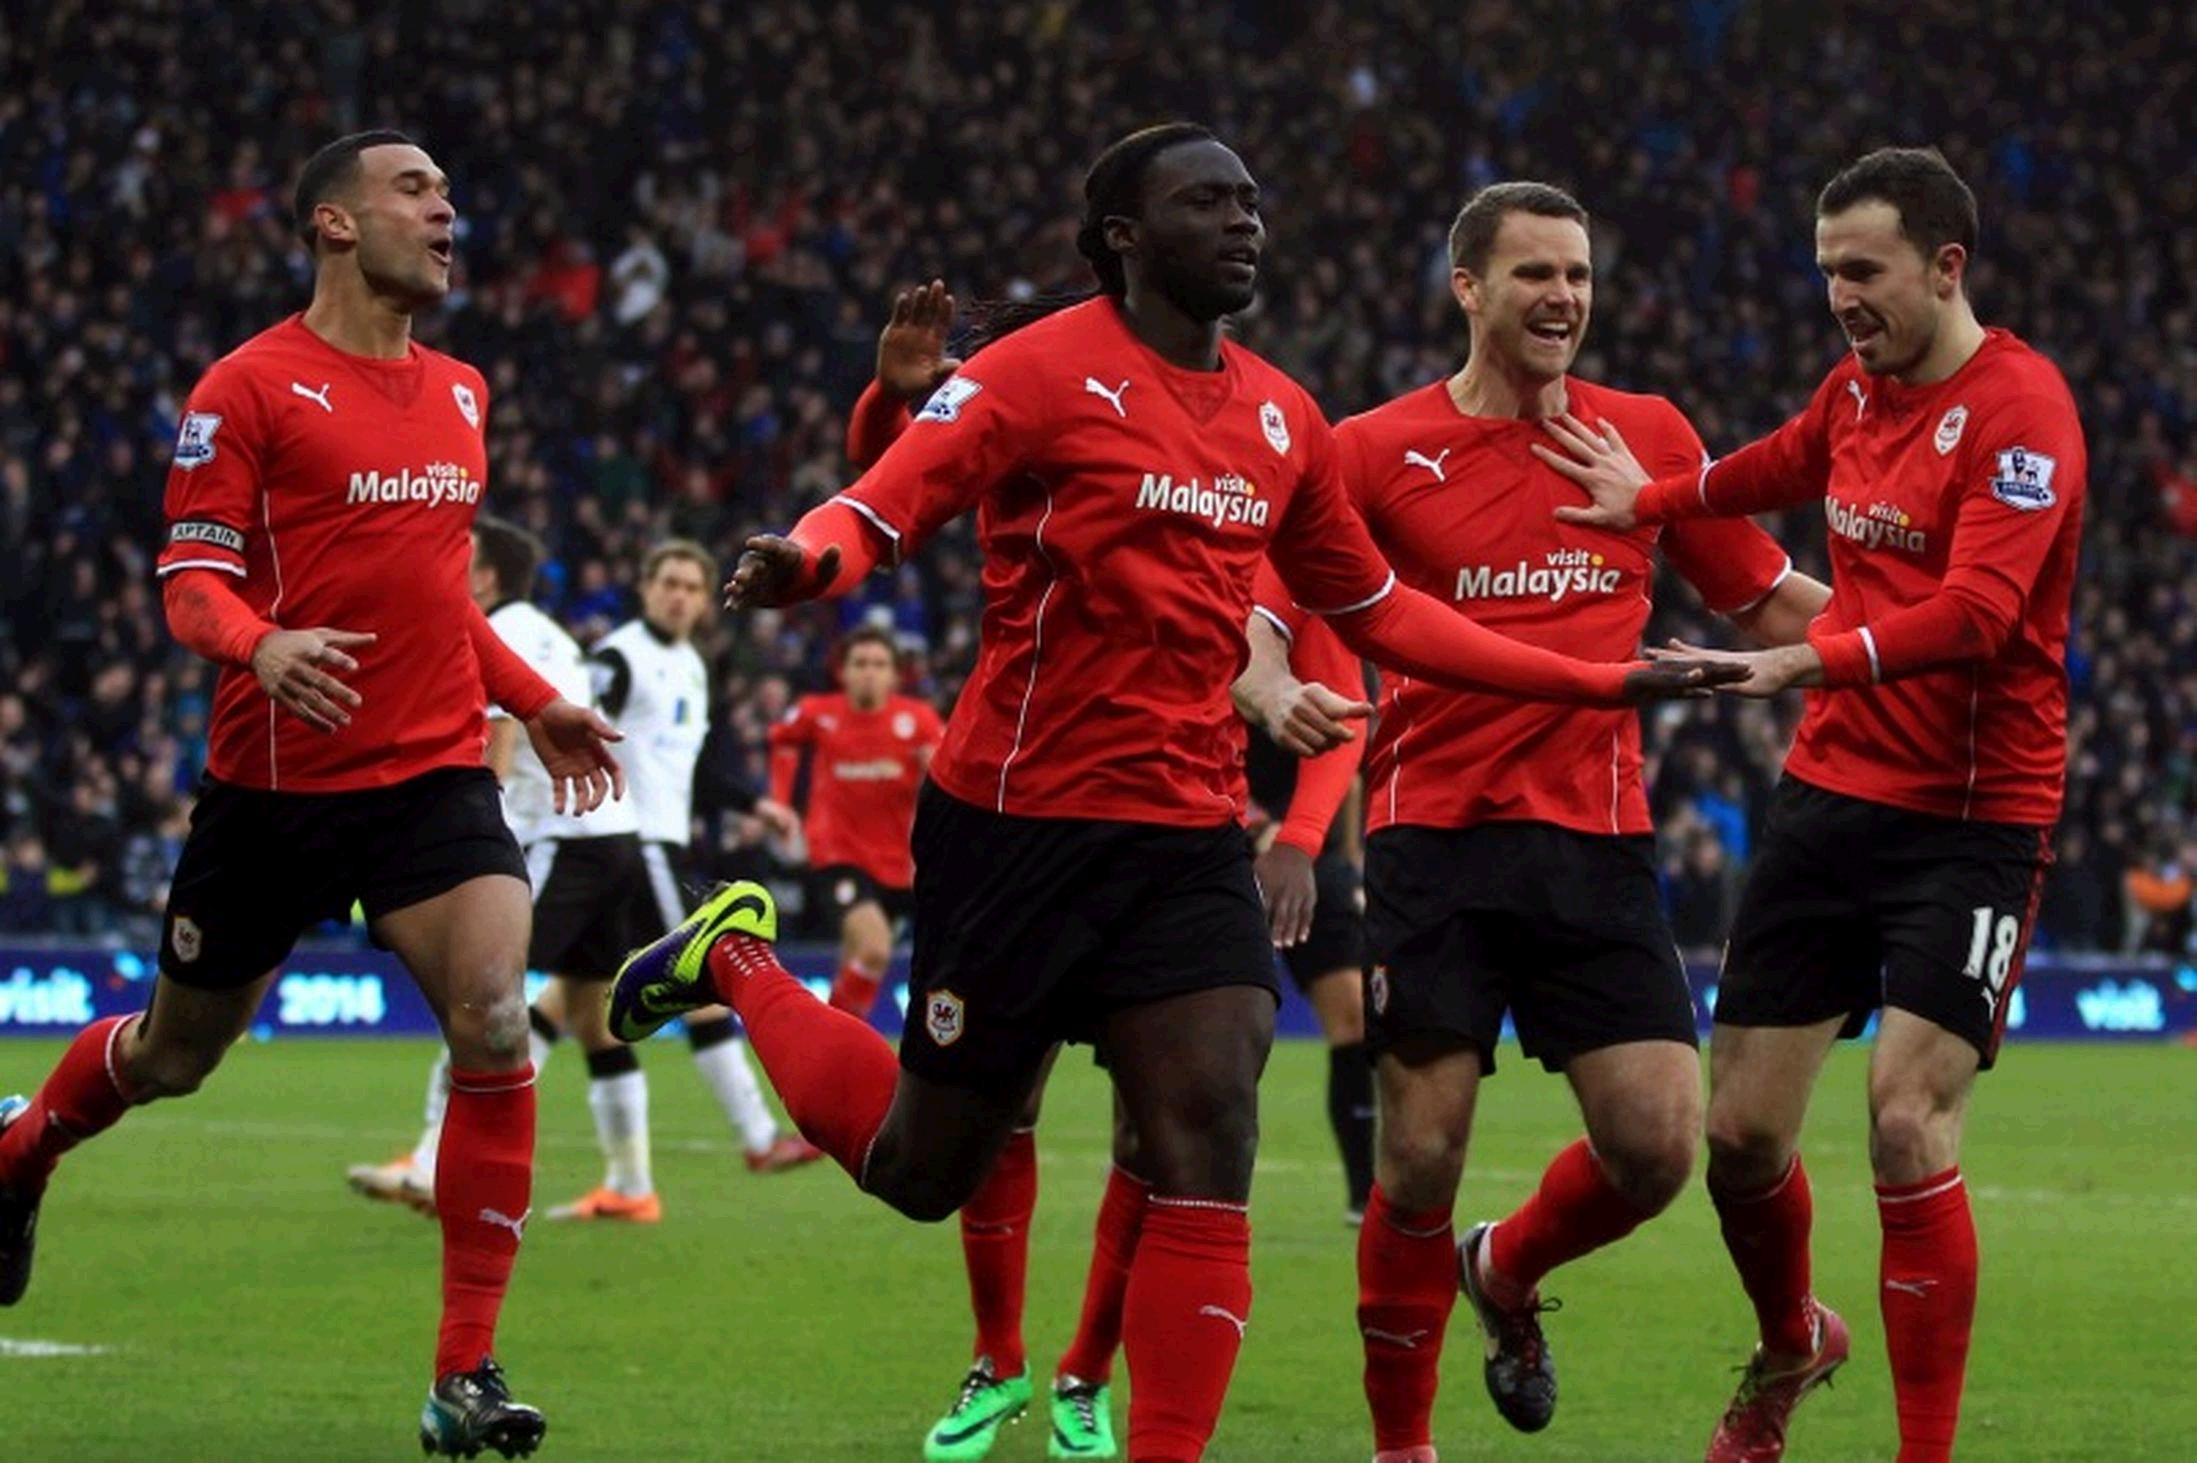 Veteran striker Jones admits there's not enough belief in Cardiff's dressing room.